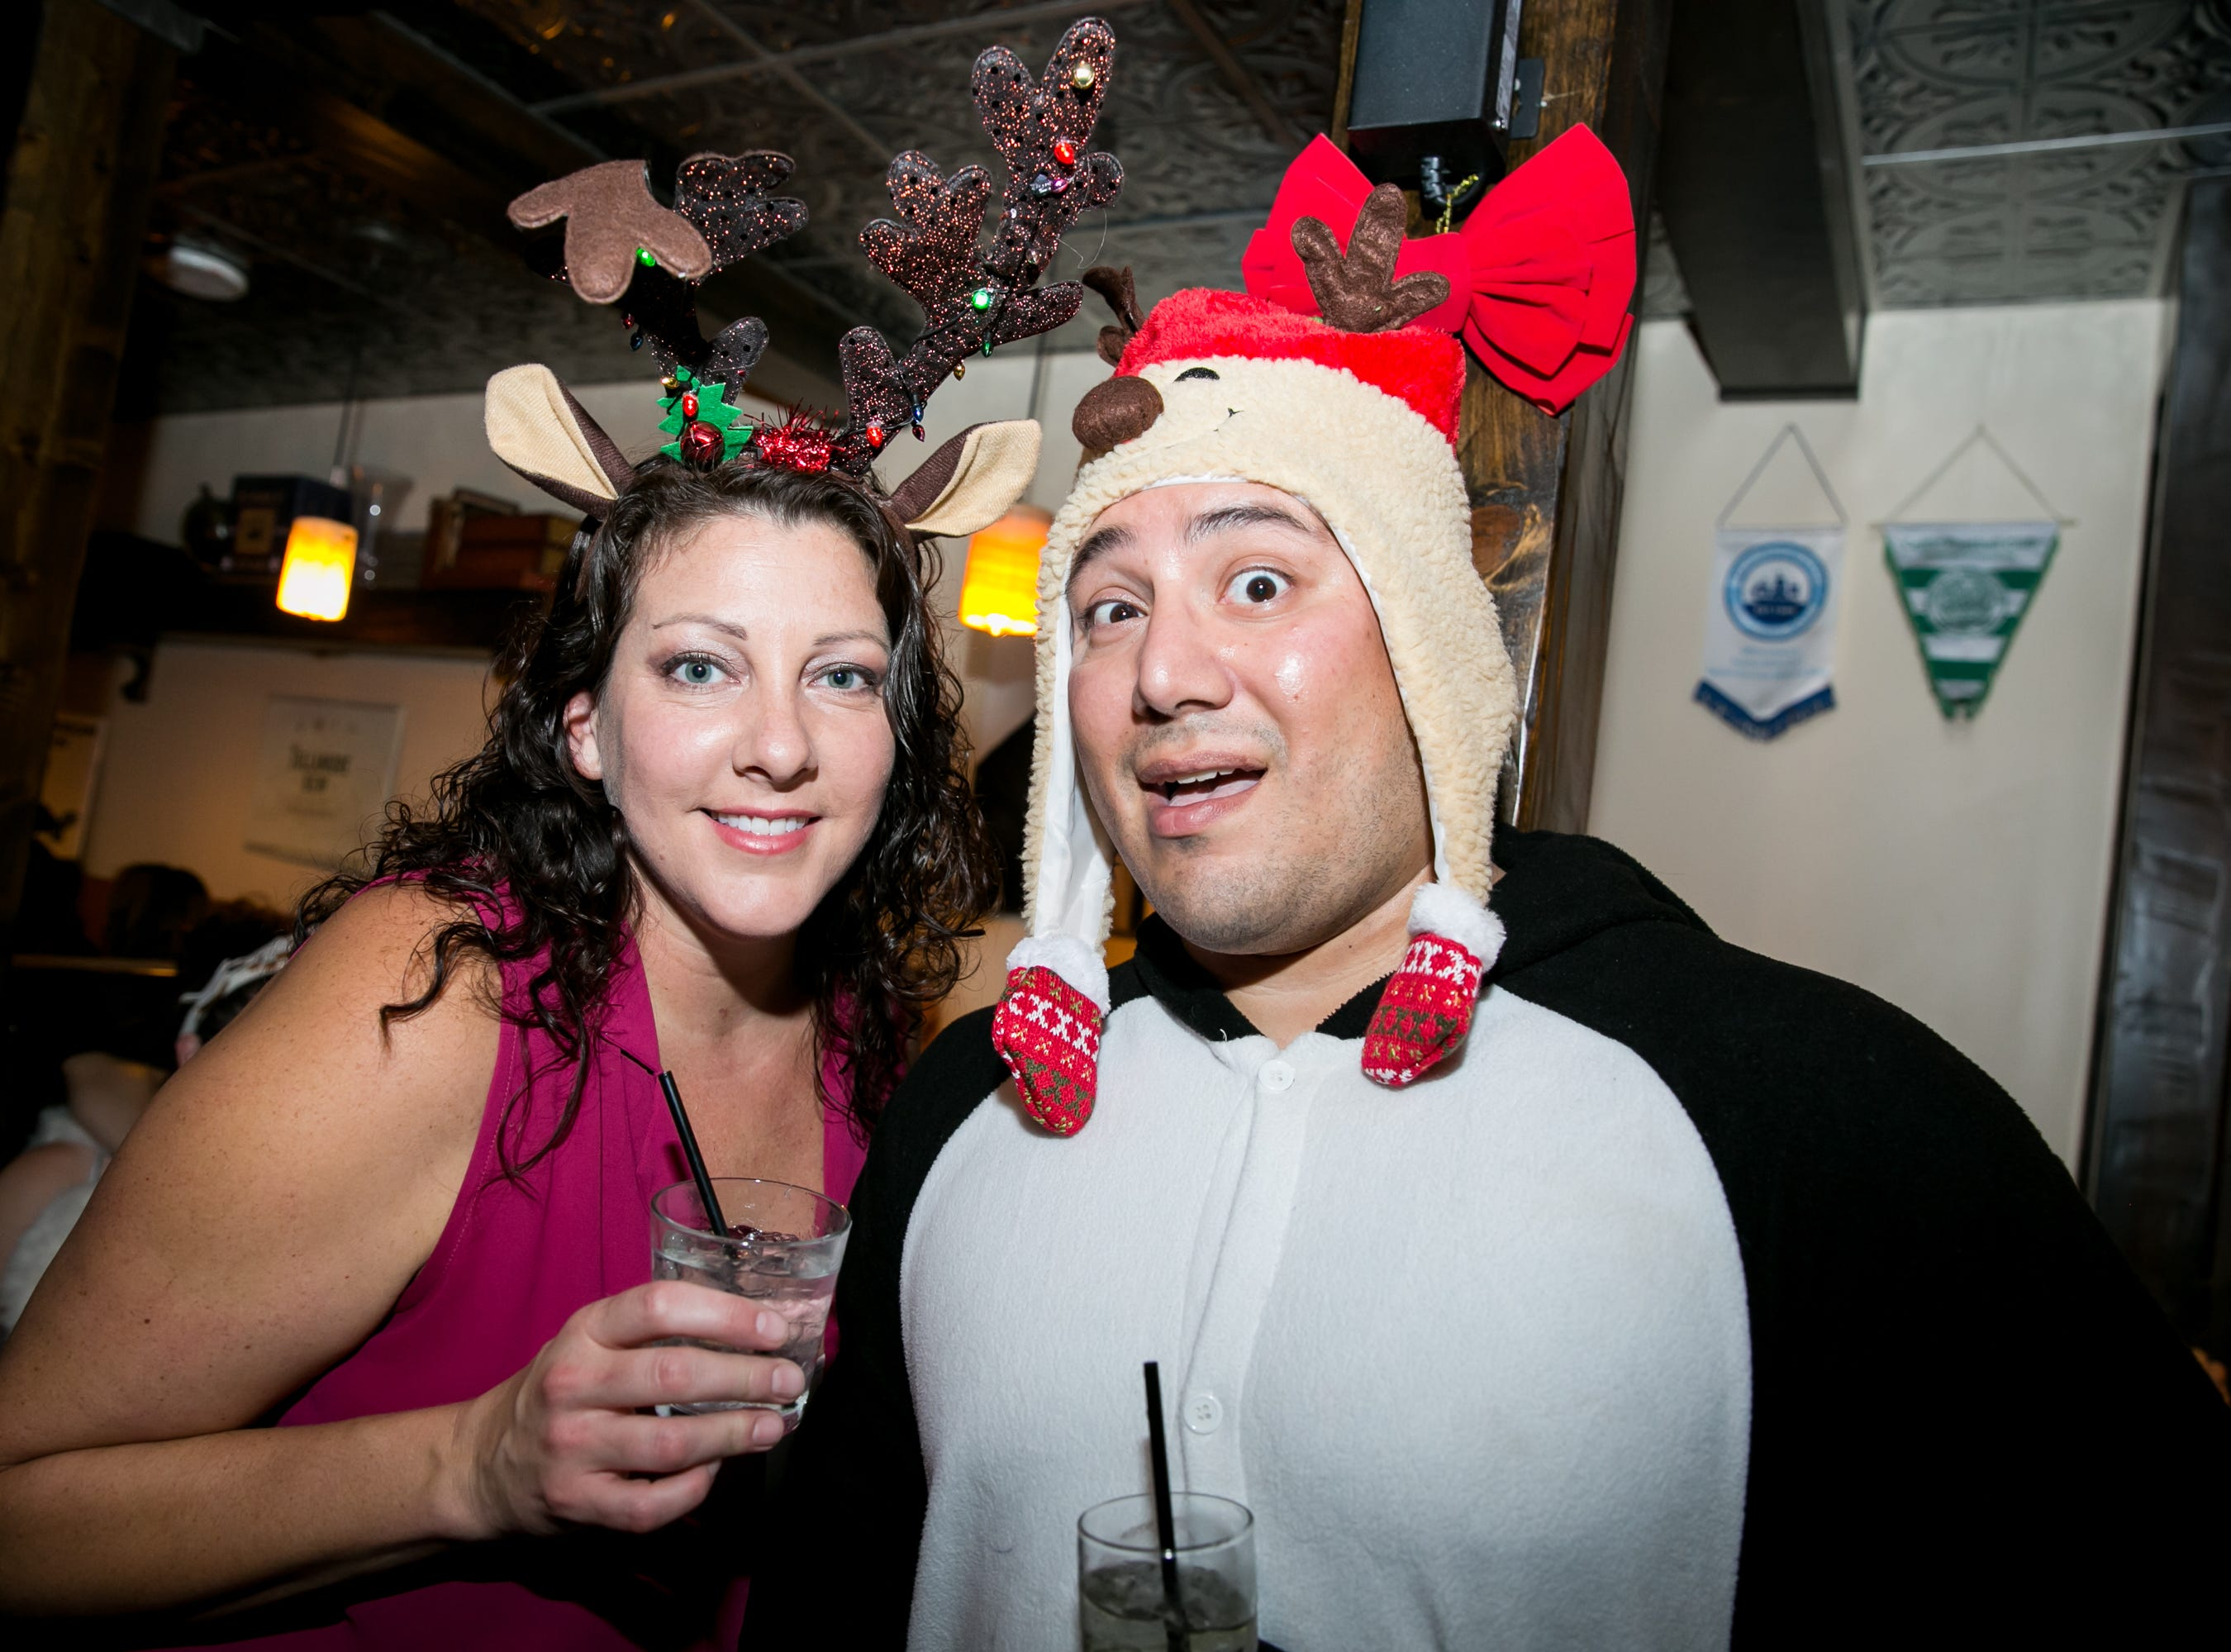 These two had a blast at The Kettle Black during Santarchy on Saturday, December 8, 2018.